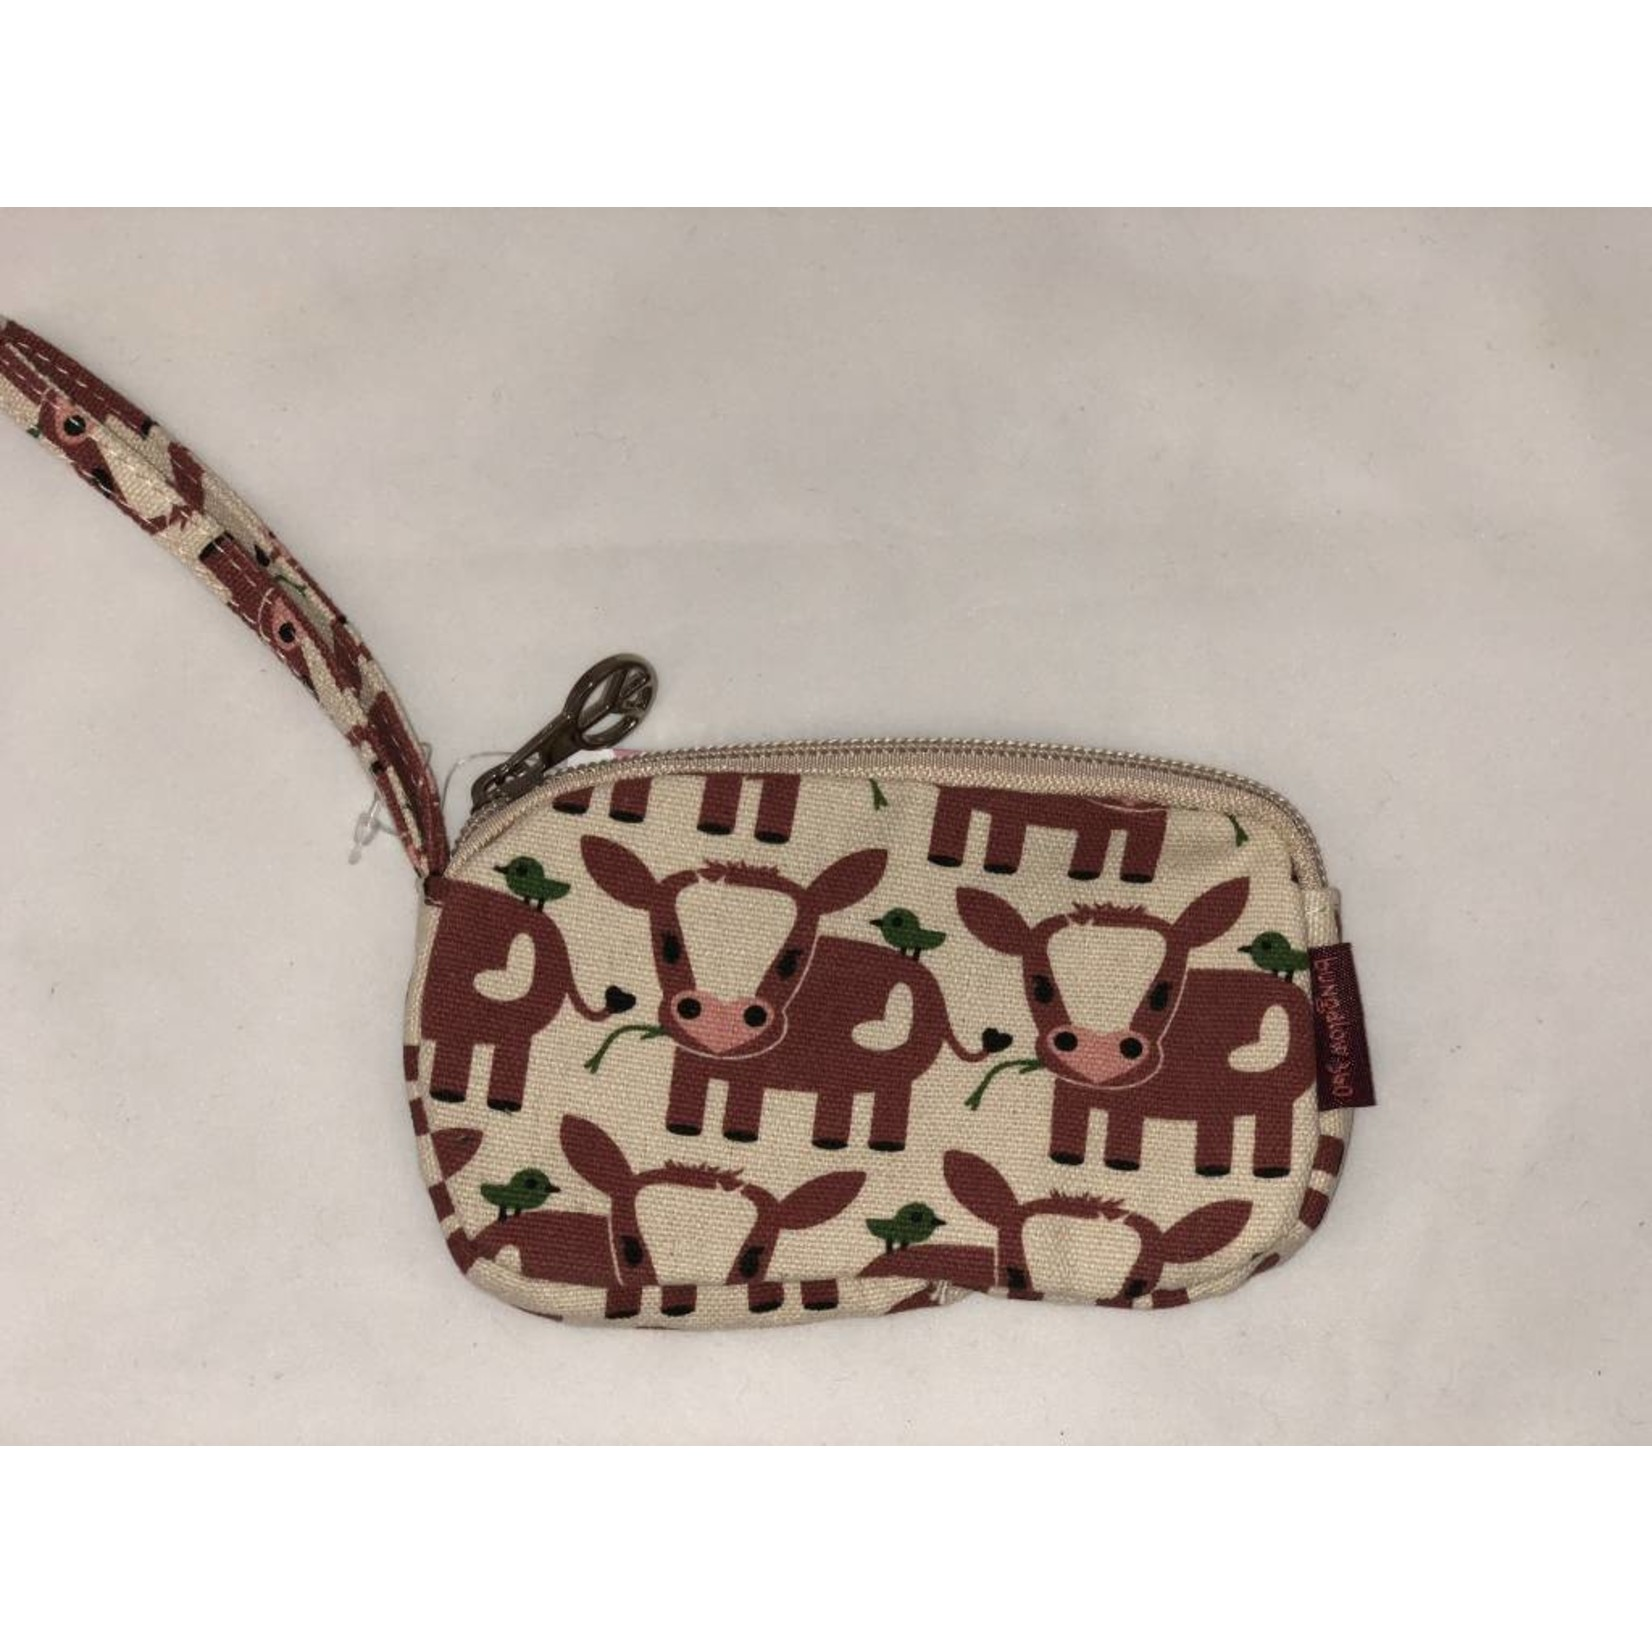 Bungalow 360 Clutch Coin Purse - Cow